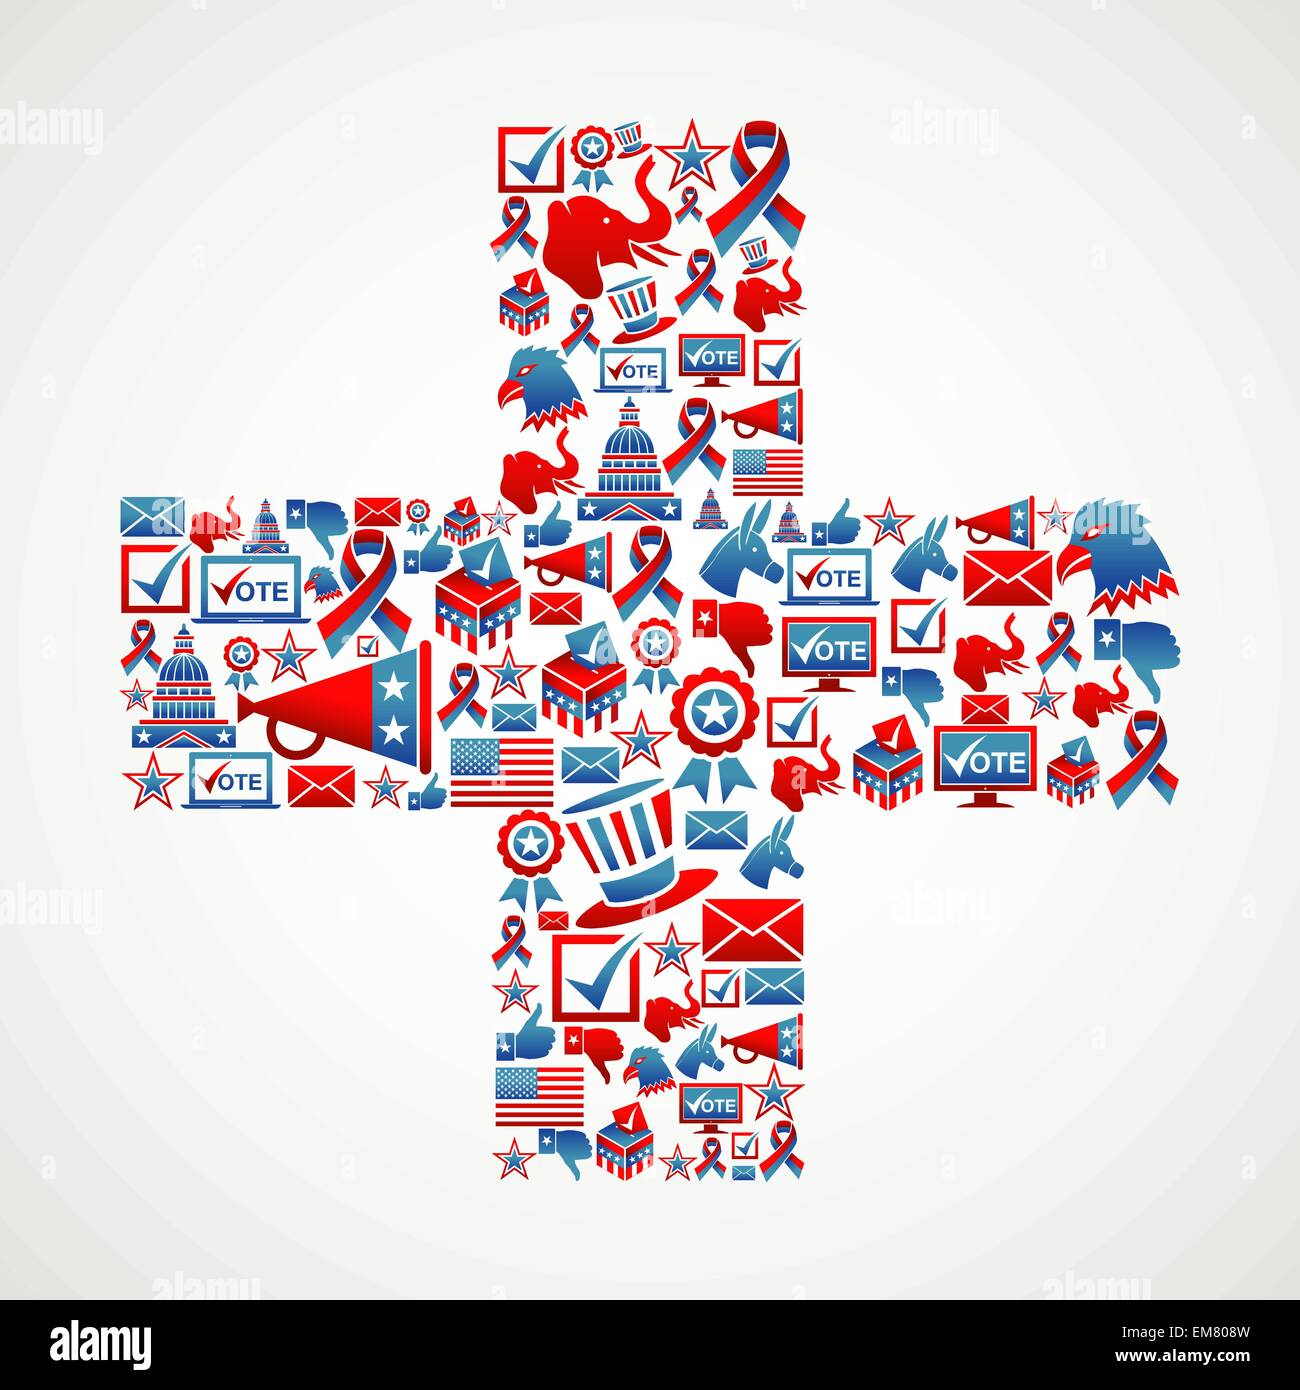 Marketing US elections icon in cross - Stock Image